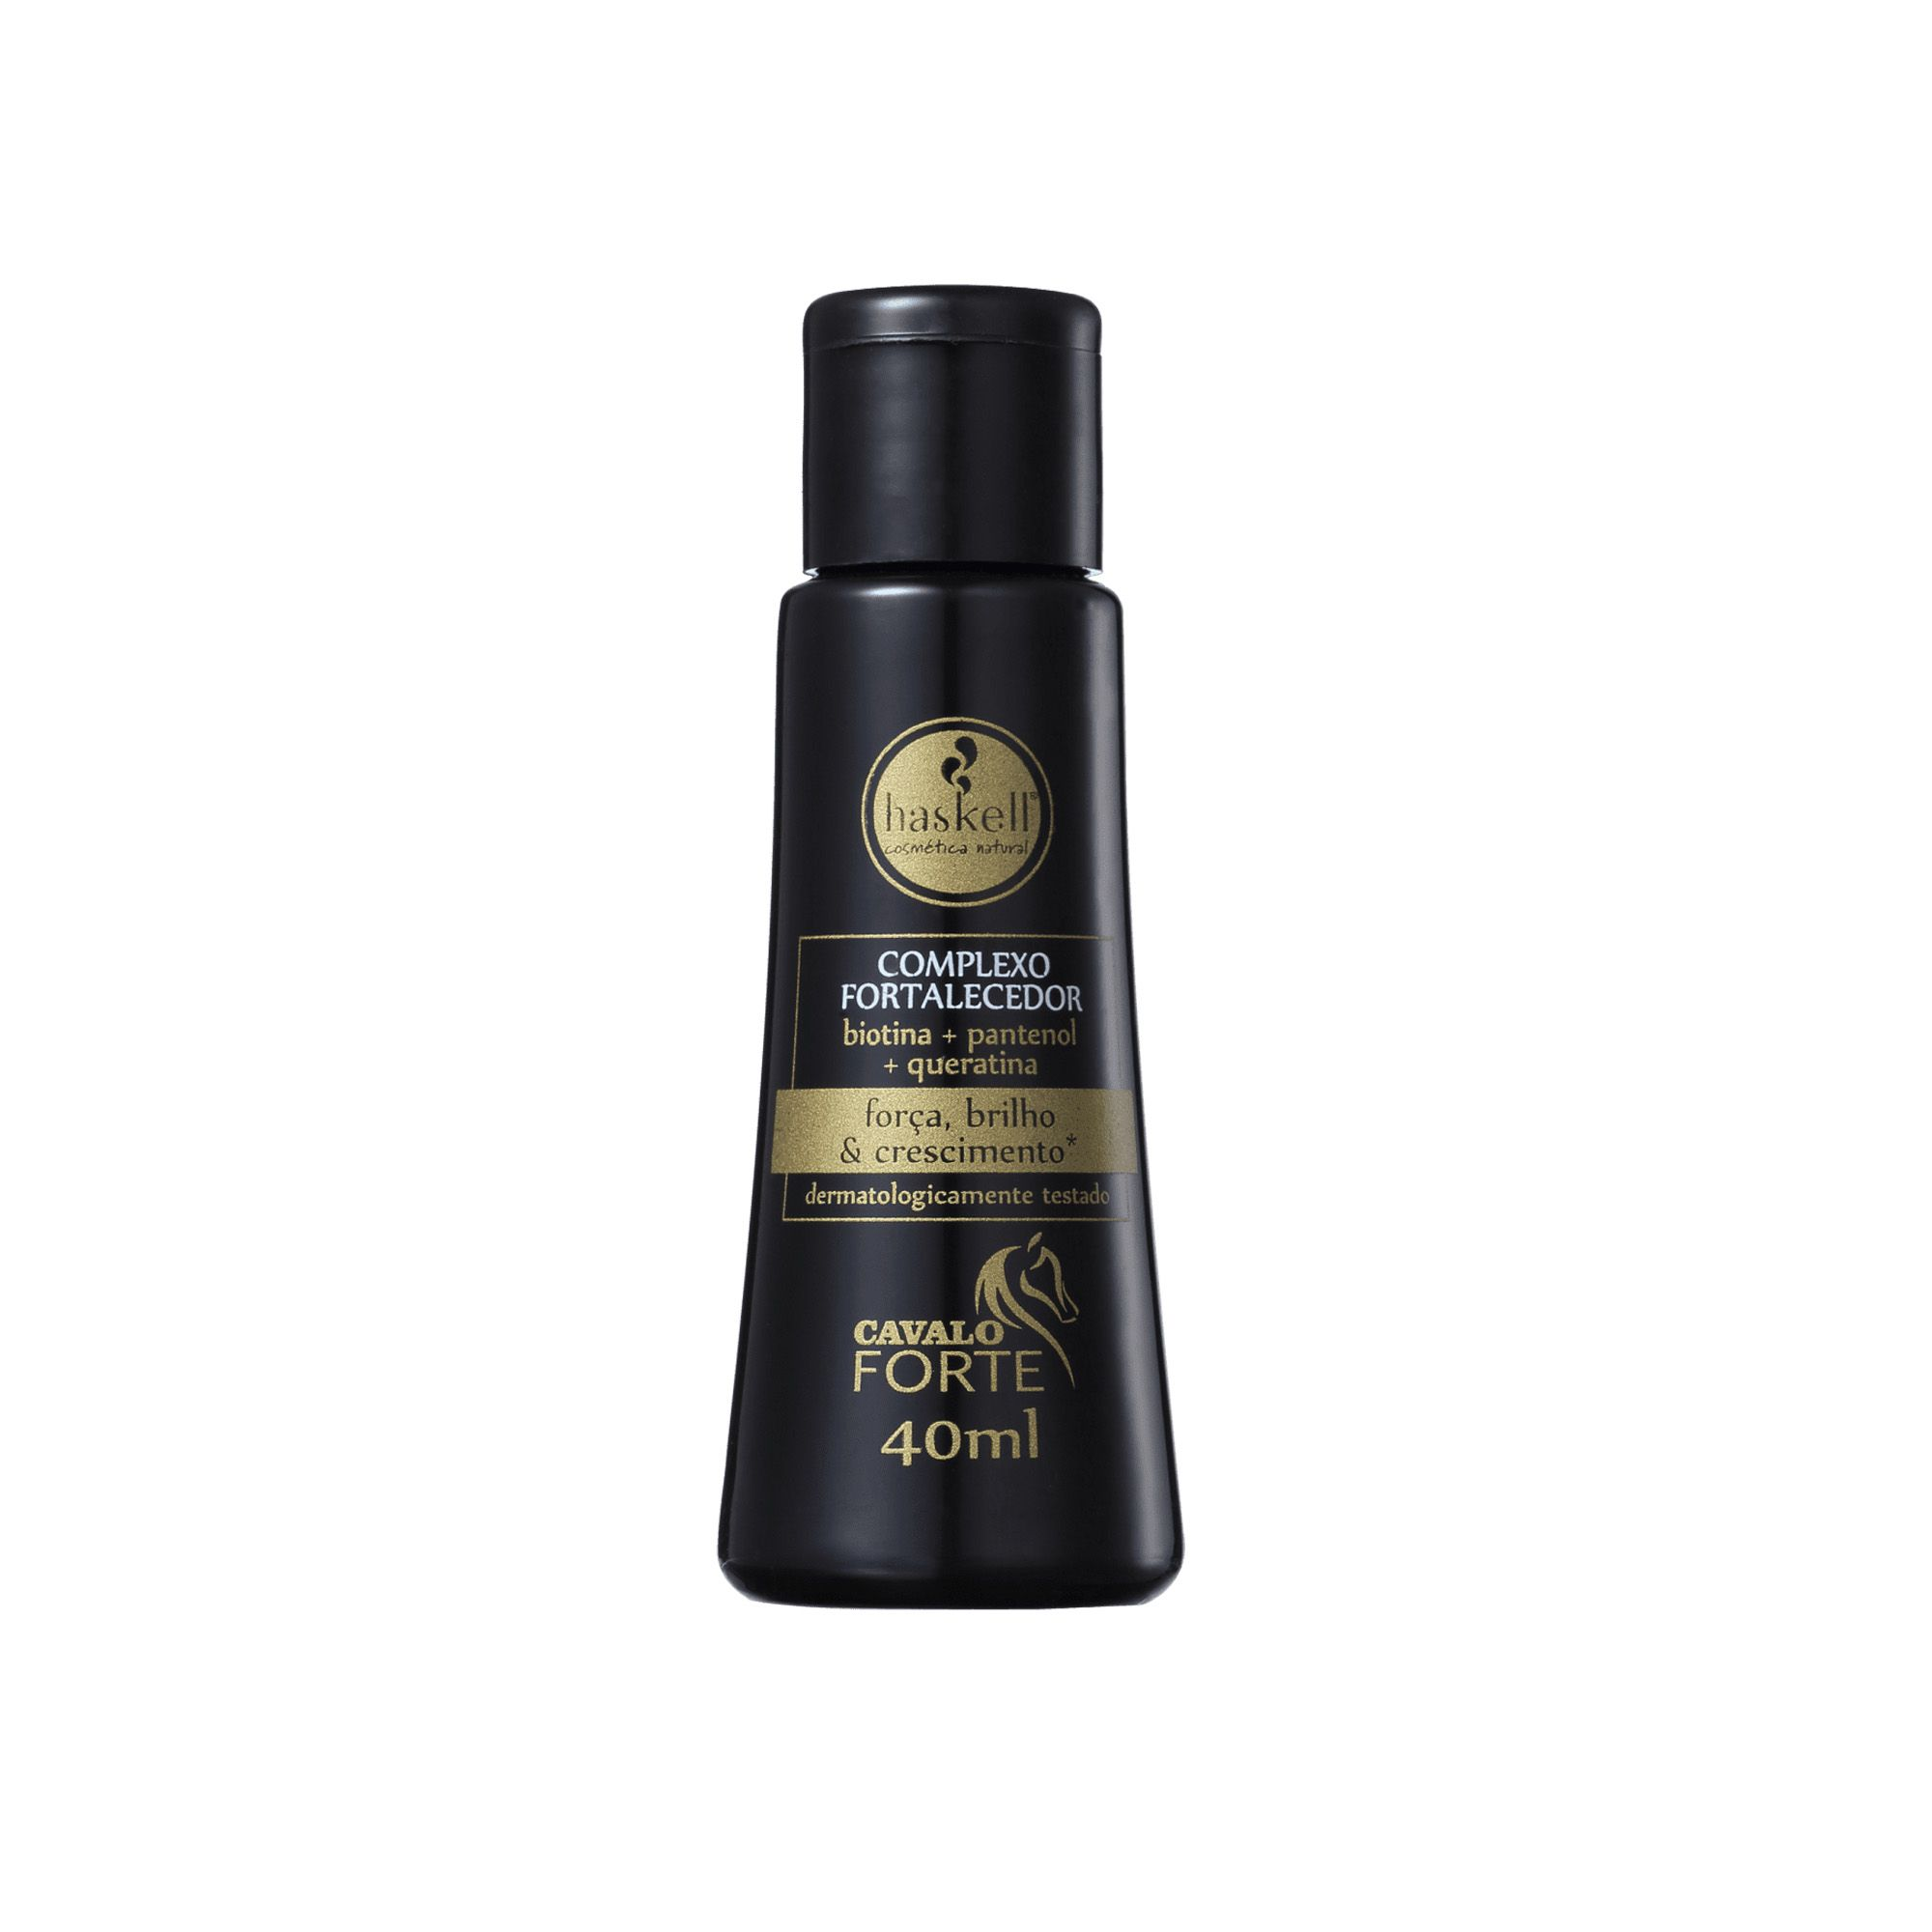 Complexo Fortalecedor Cavalo Forte 40ML - Haskell